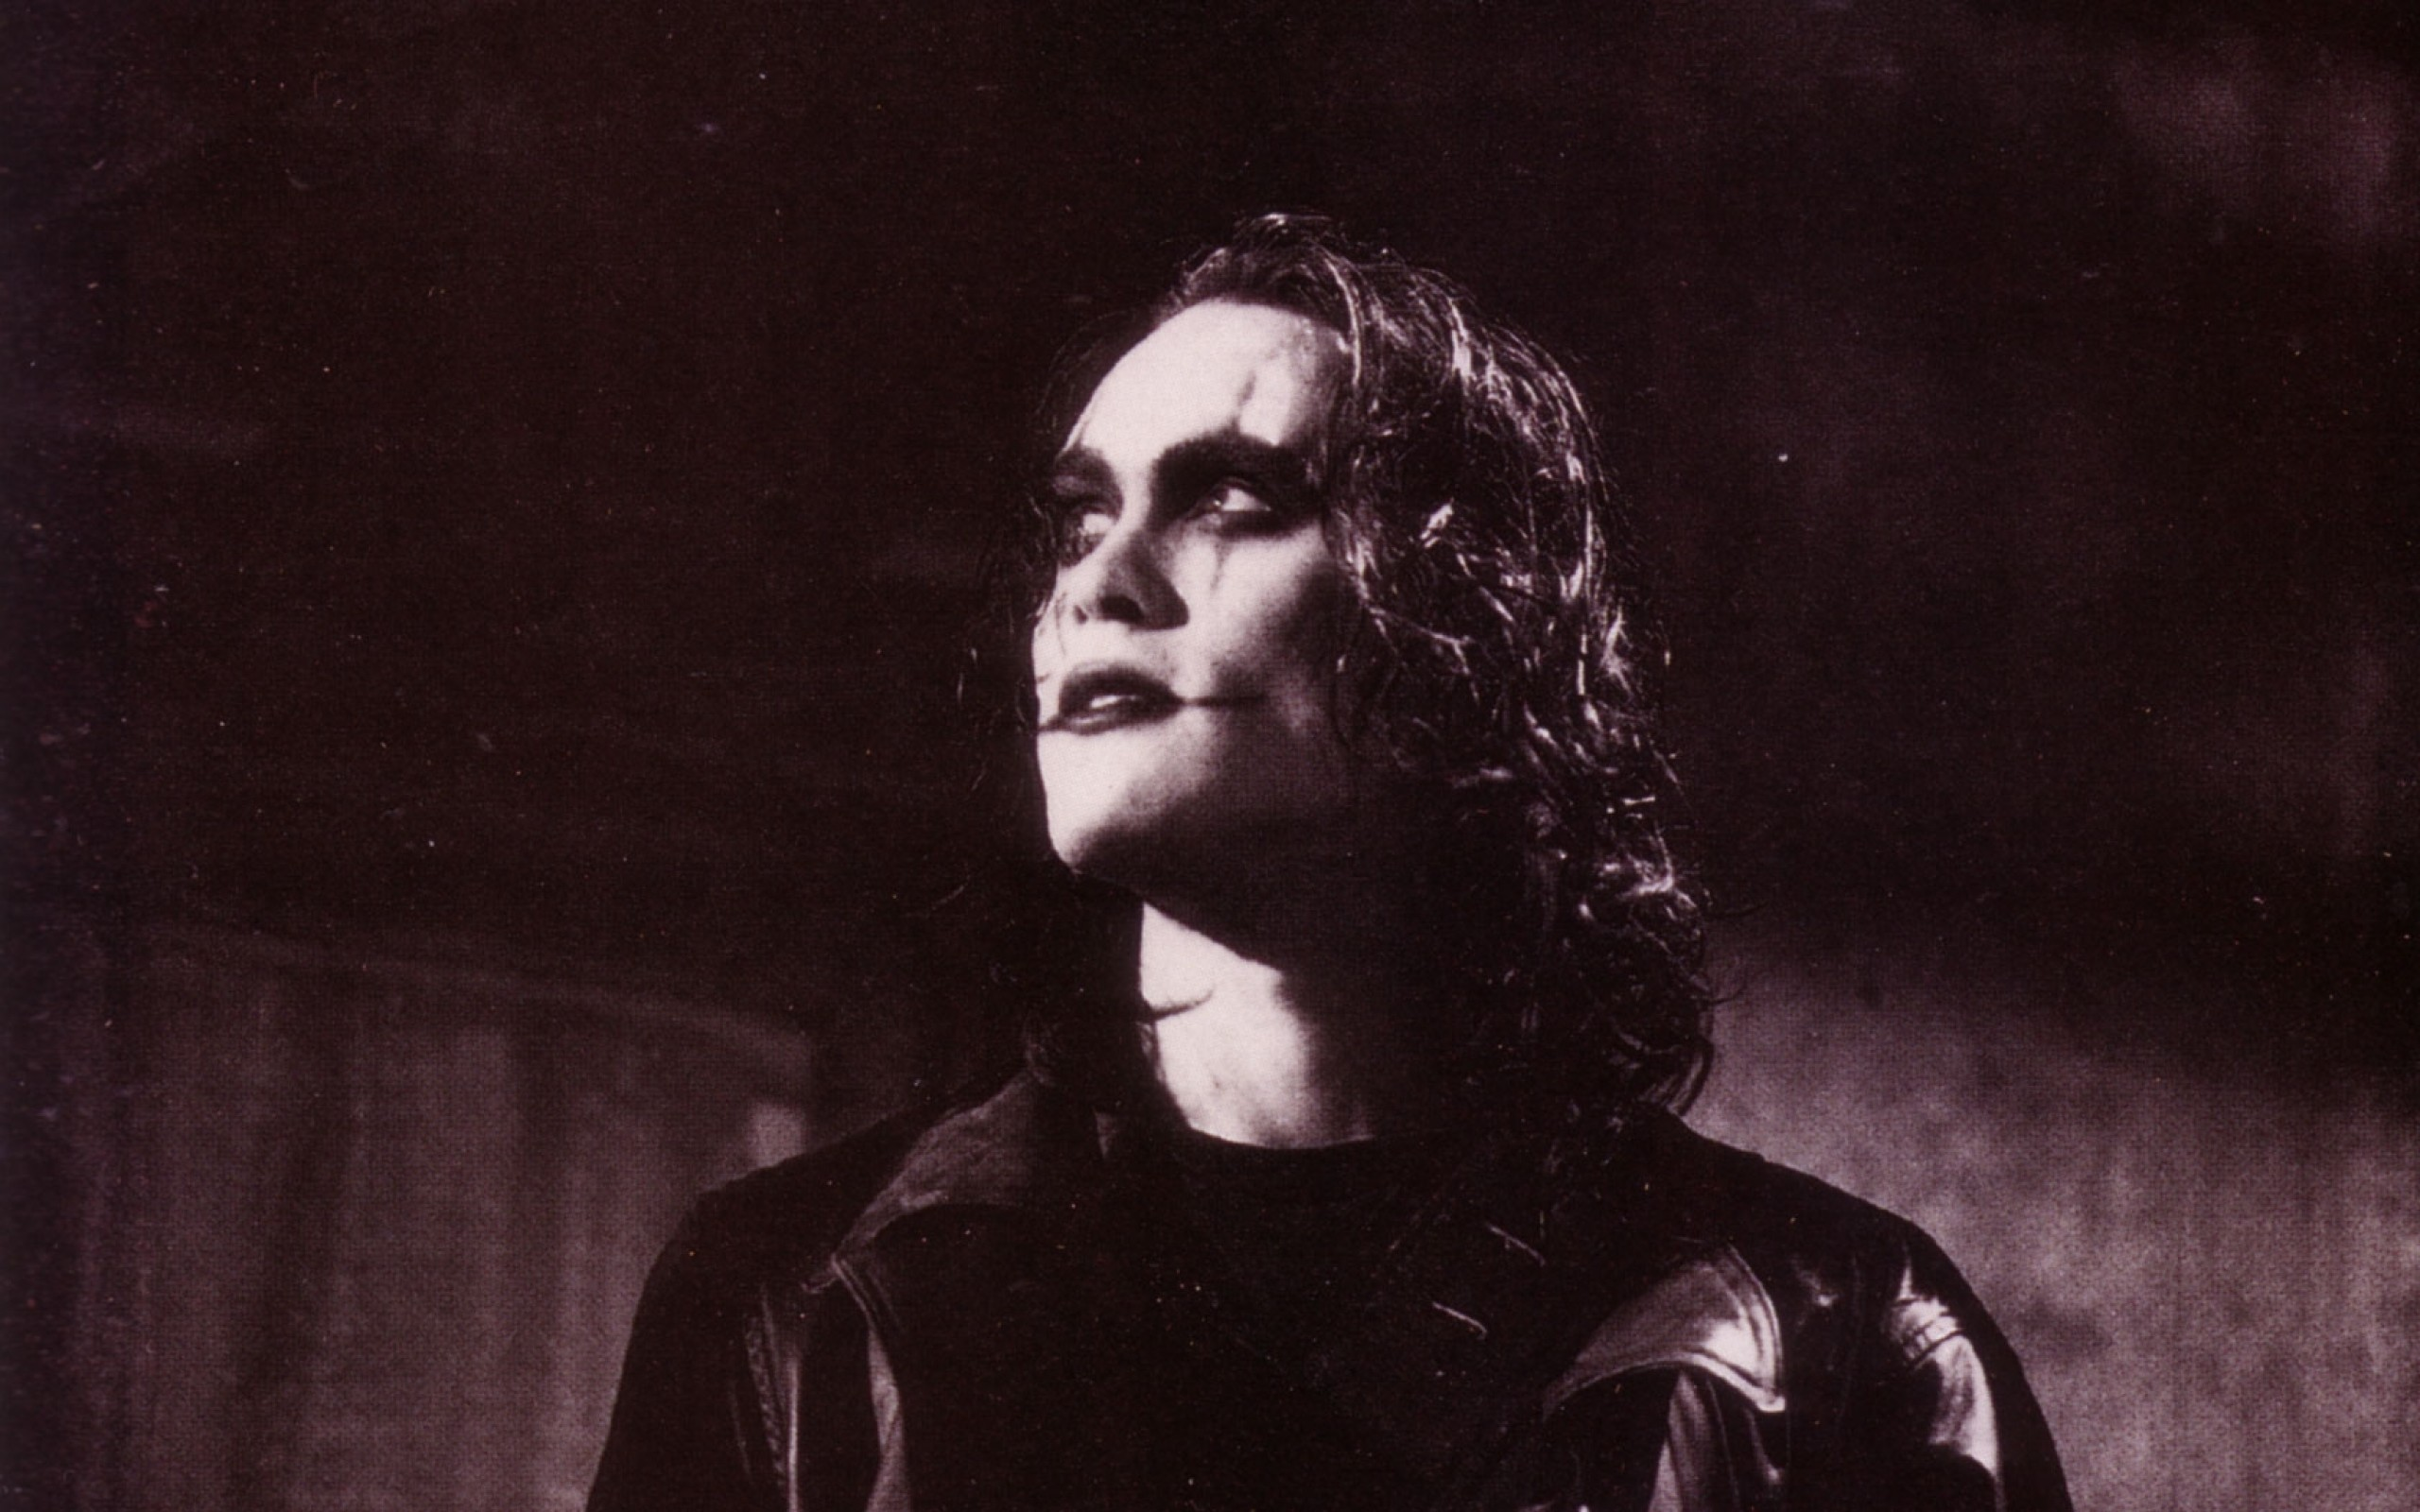 1920x1080 Brandon Lee The Crow Pictures